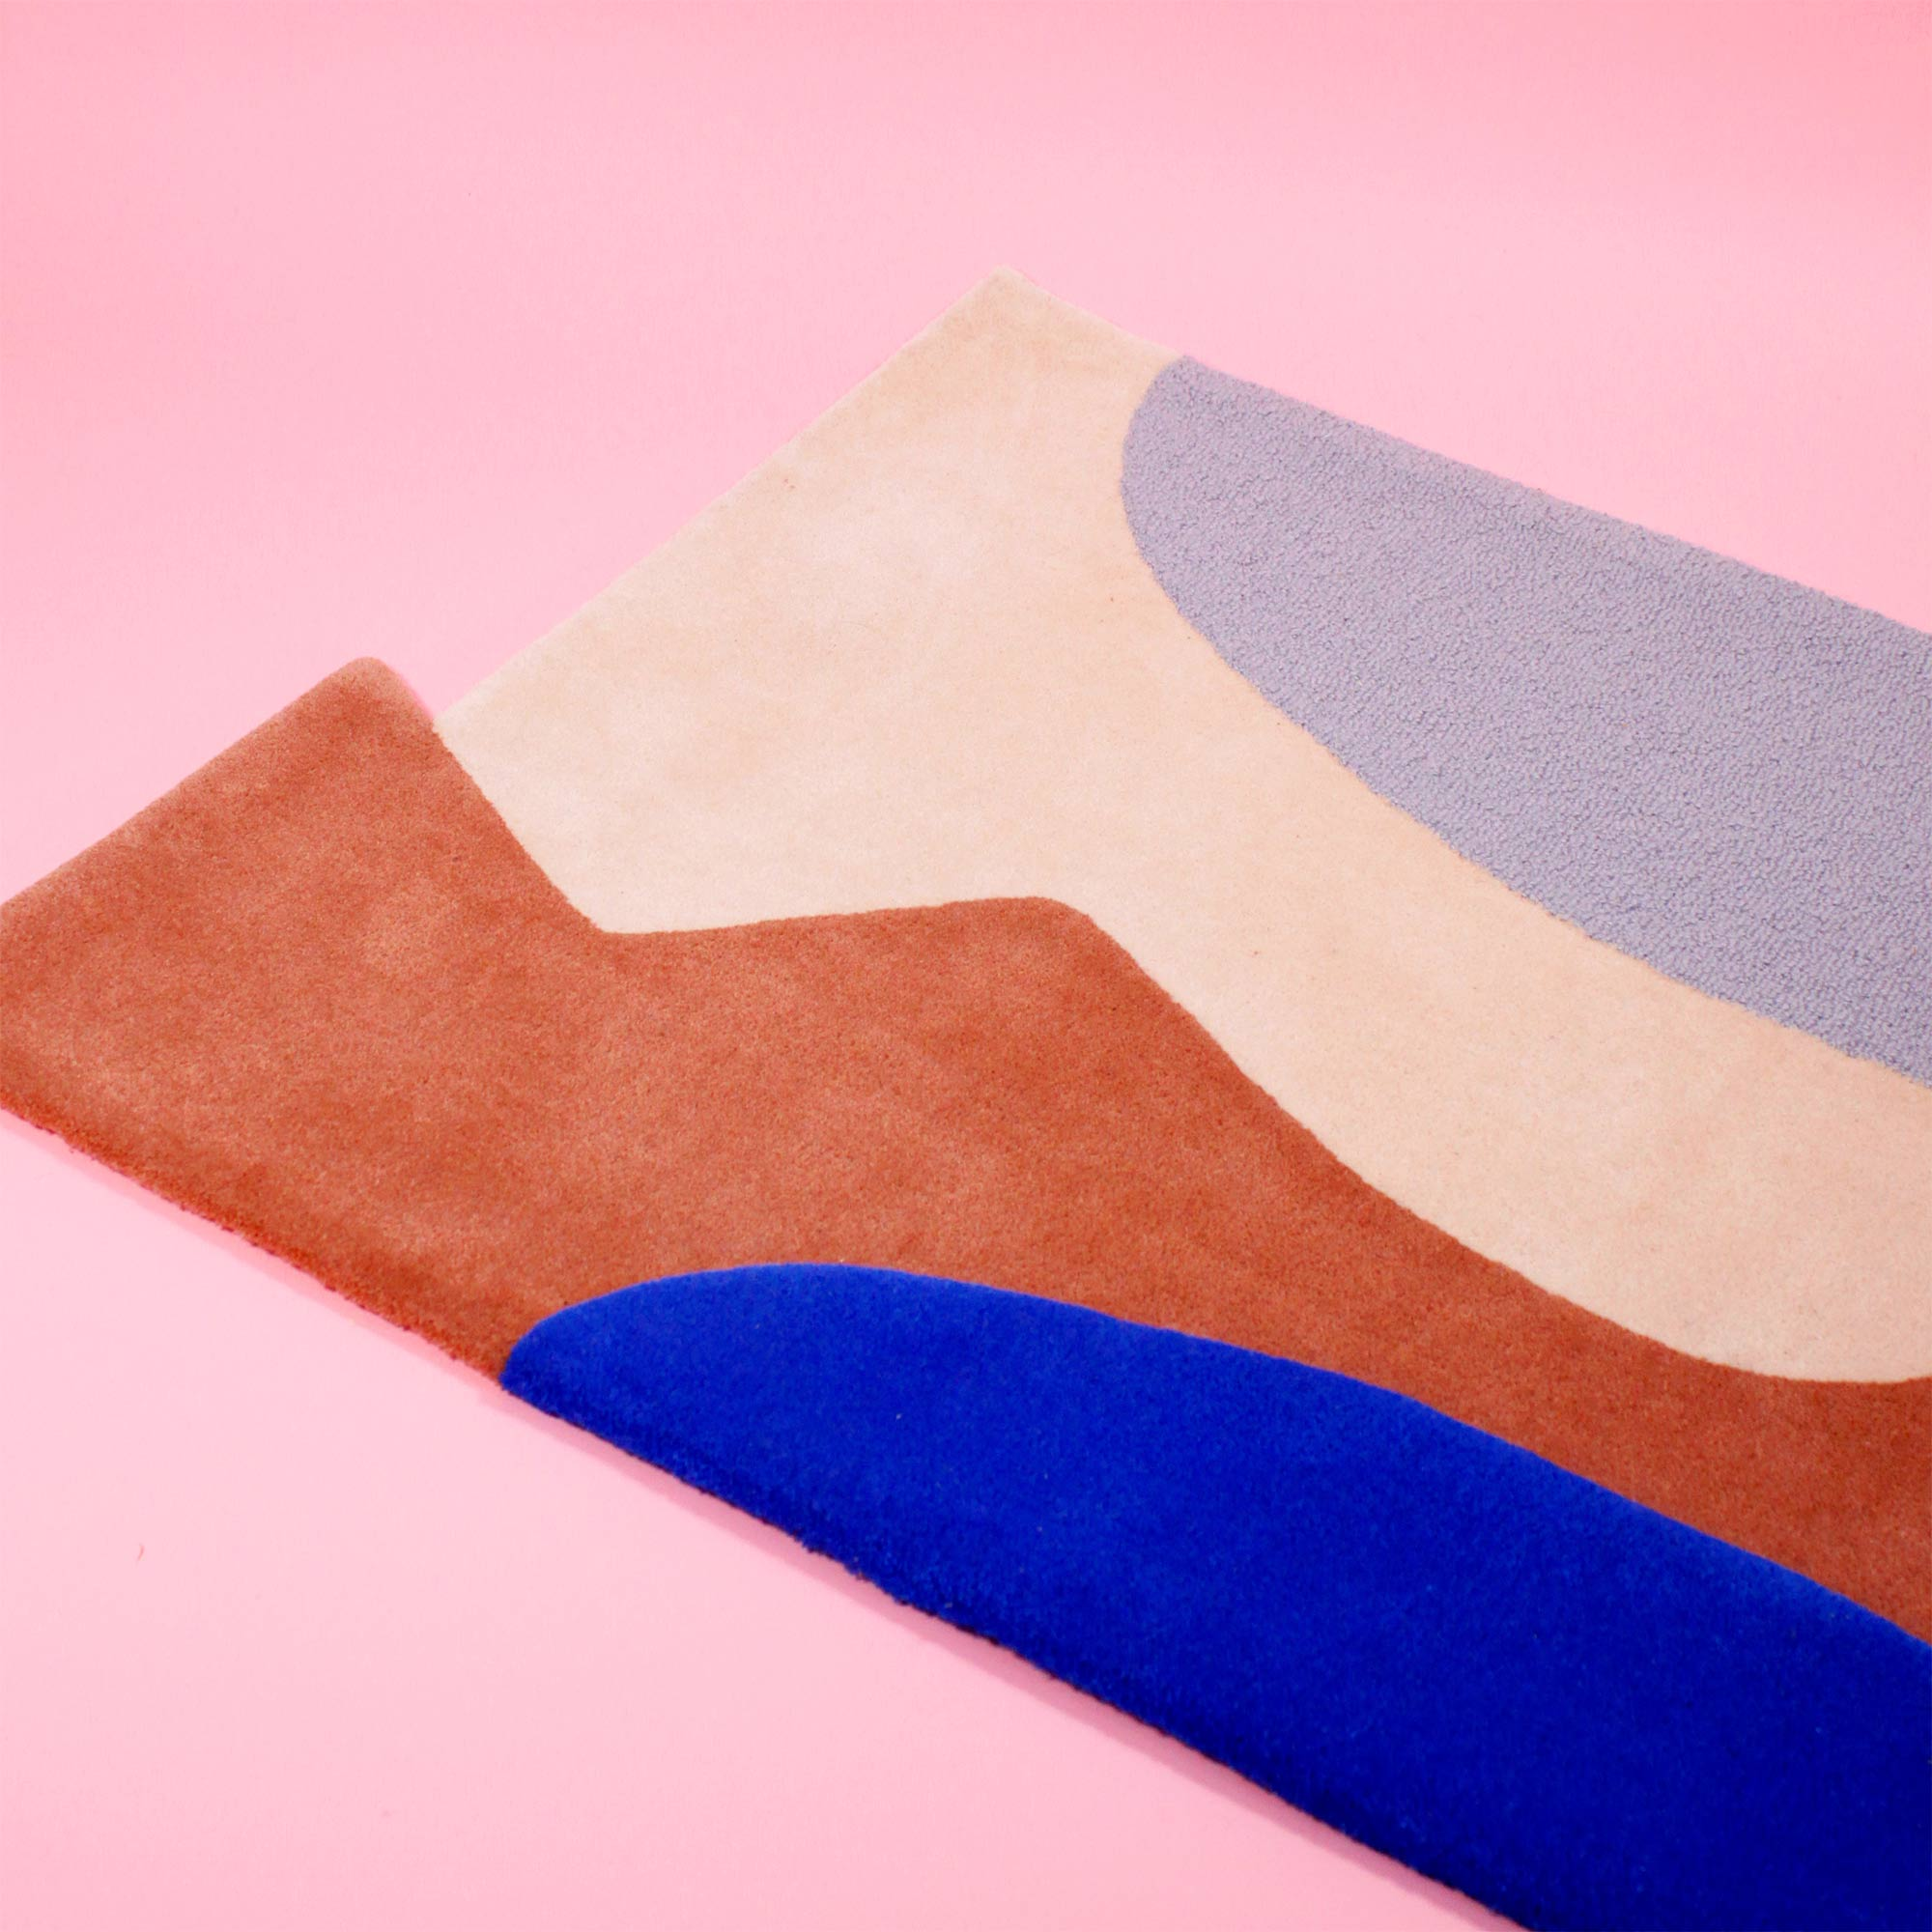 HAND-TUFTED-RUG-MAINEW-ZELAND-WOOL-LIMITED-EDITION-MADE-IN-COPENHAGUE-5